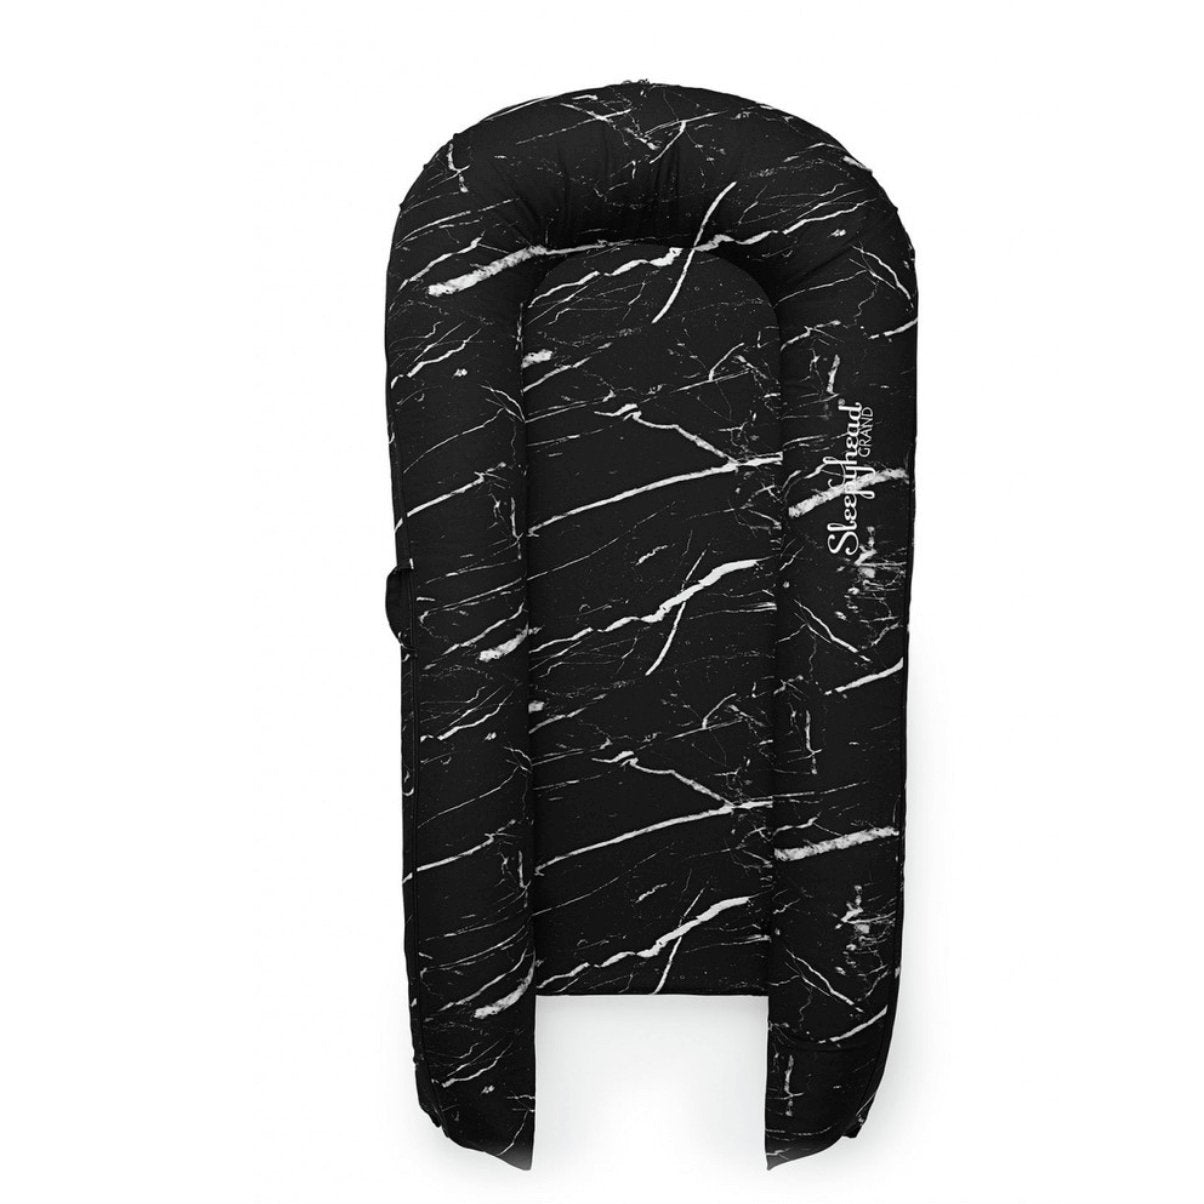 Sleepyhead Grand Pod Spare Cover in Black Marble (9-36 months)